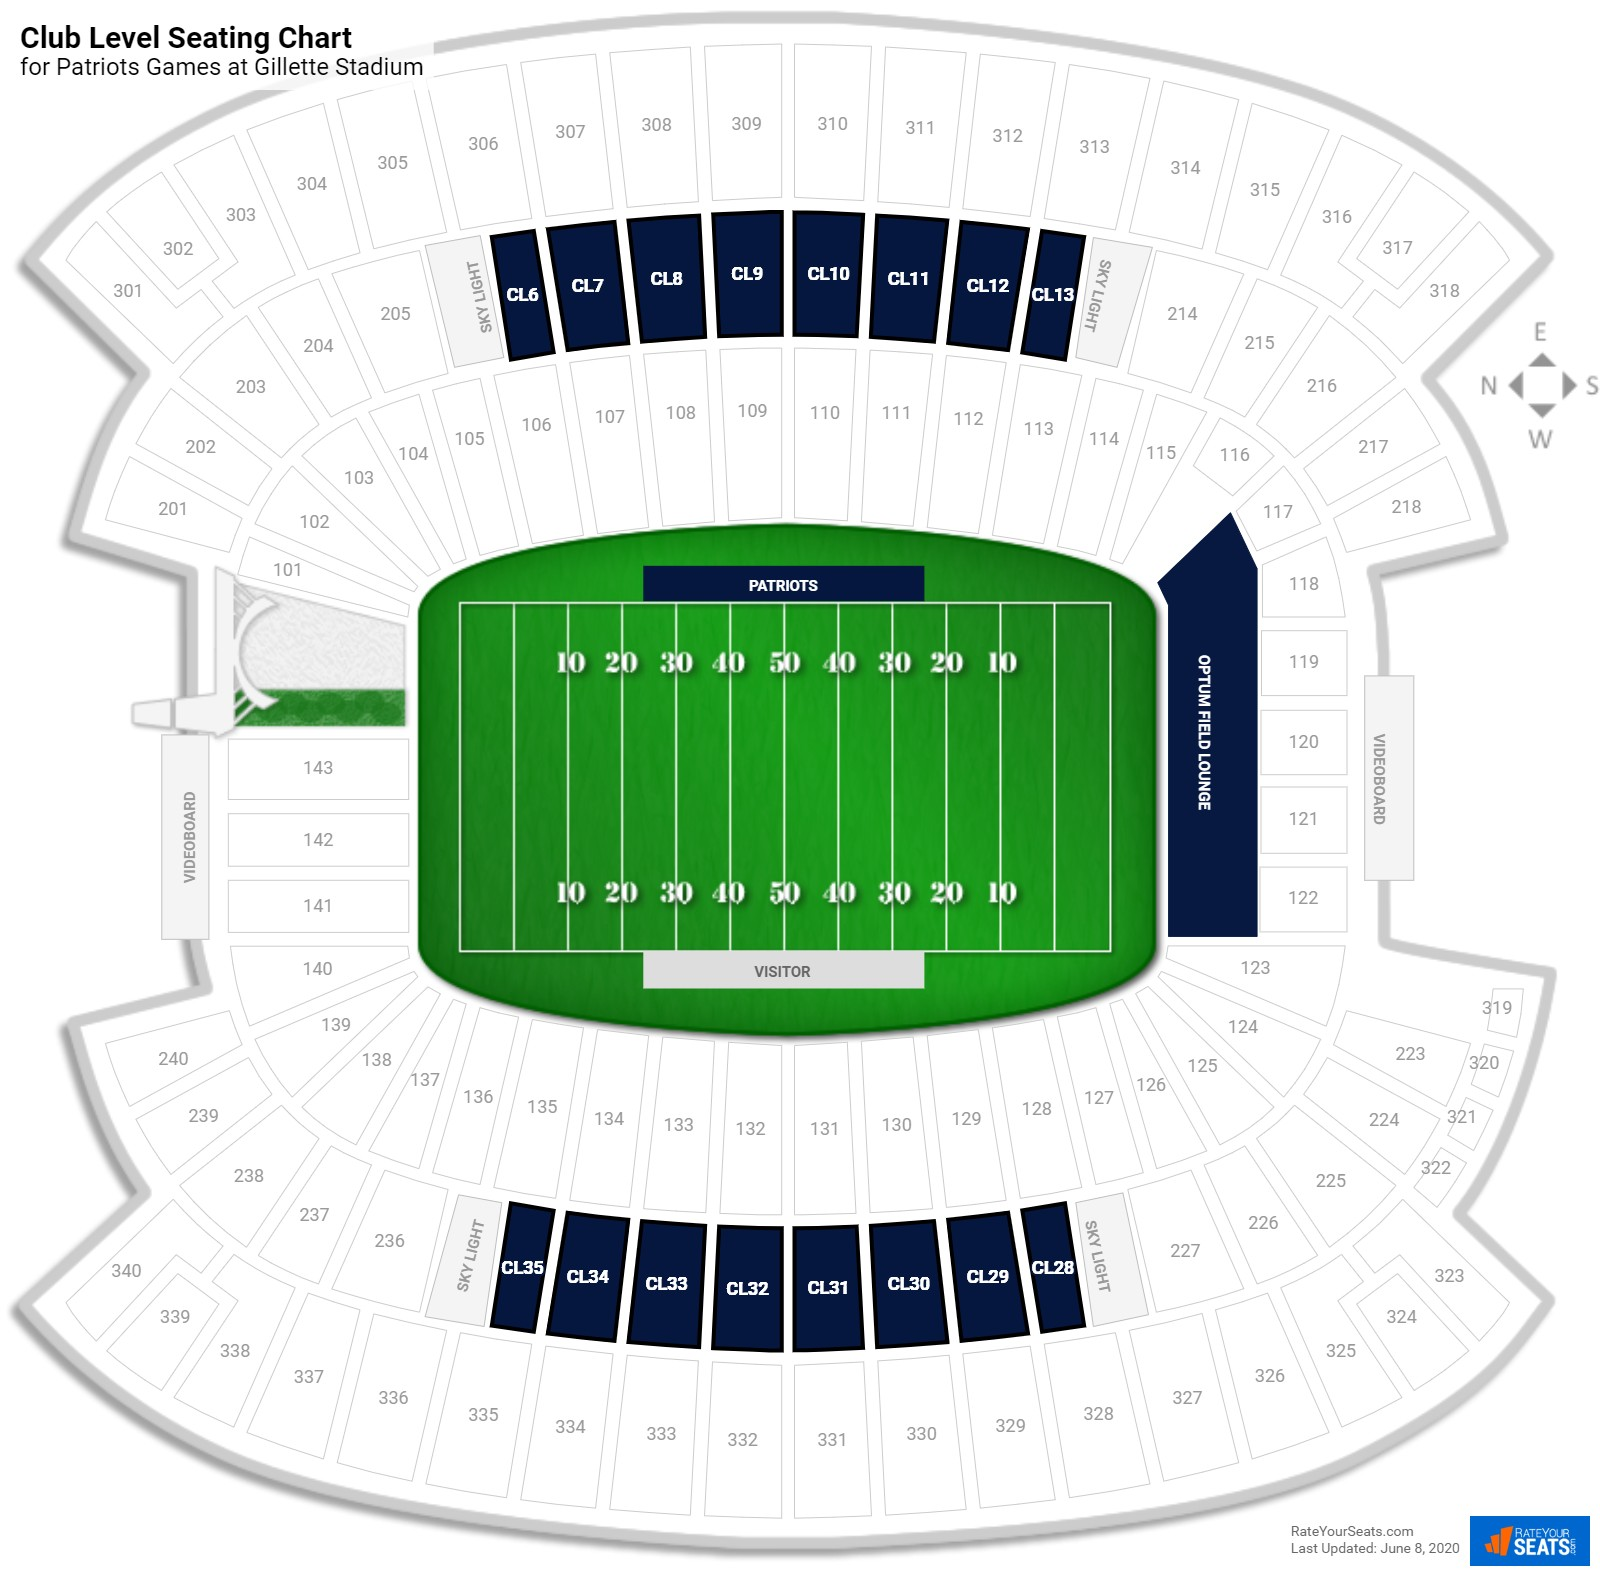 Gillette Stadium Club Level seating chart